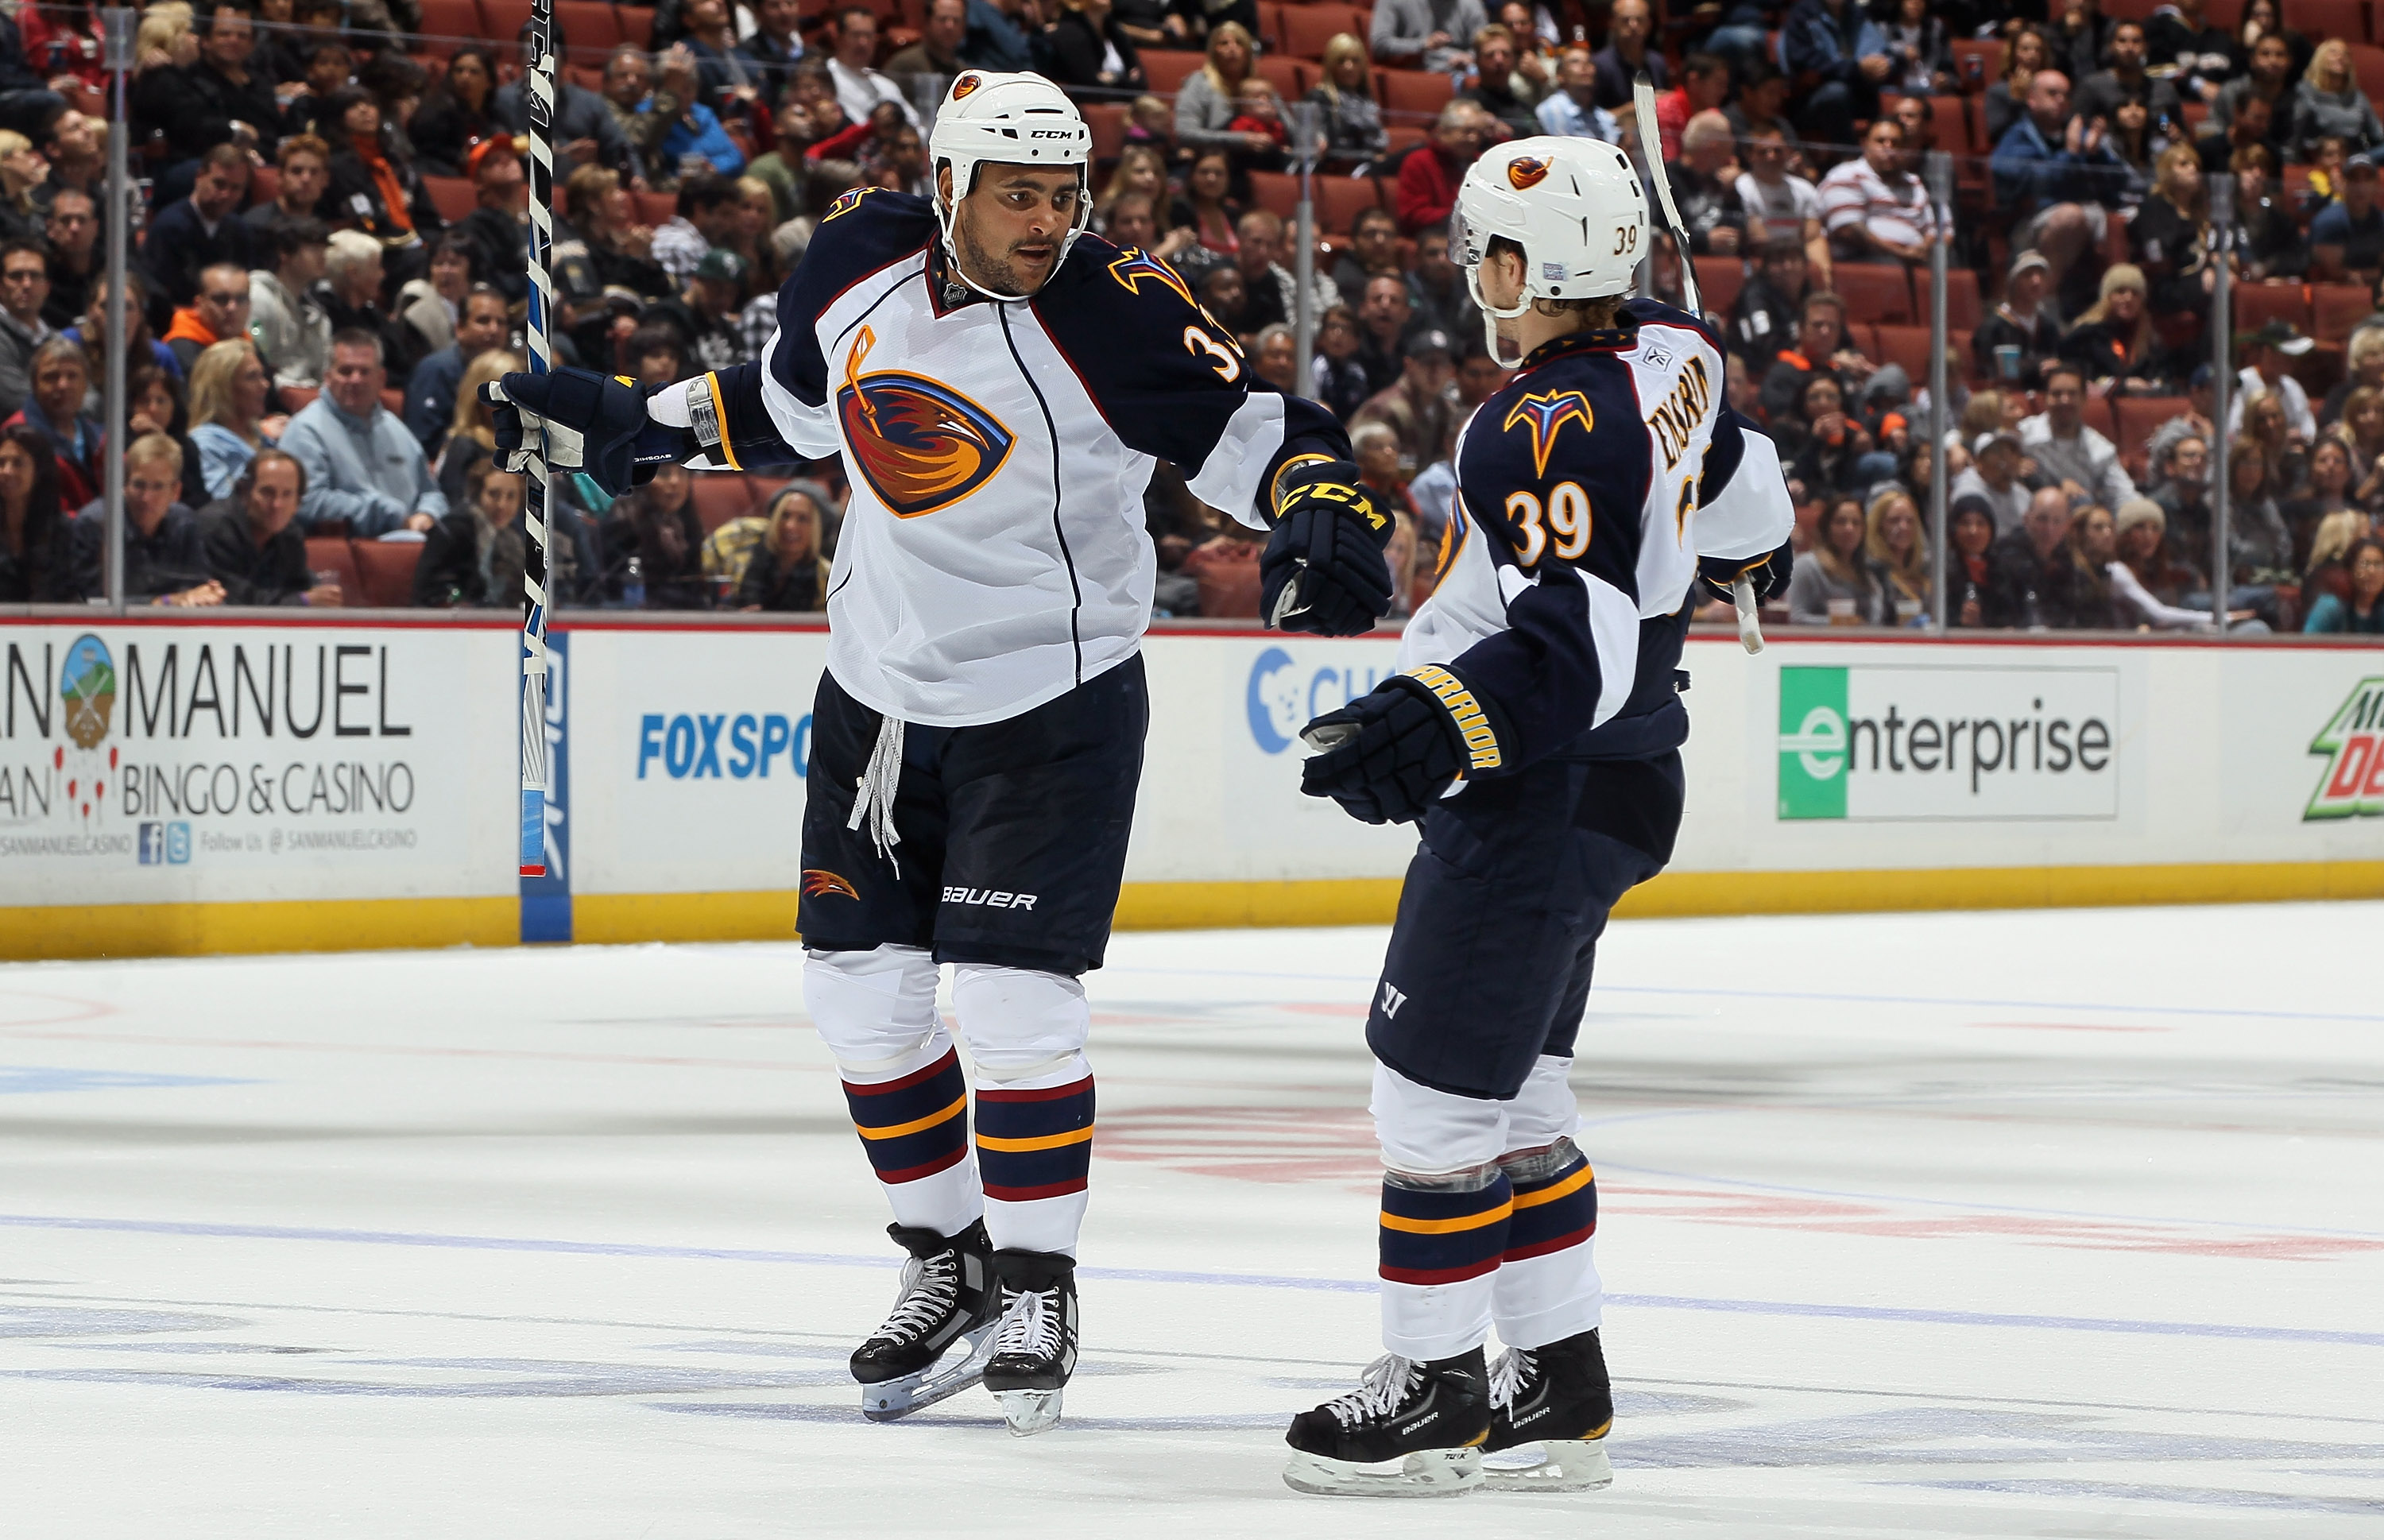 ANAHEIM, CA - OCTOBER 15:  Dustin Byfuglien #33 and Tobias Enstrom #39 of the Atlanta Thrashers celebrate a goal in the second period against the Anaheim Ducks at Honda Center on October 15, 2010 in Anaheim, California.  (Photo by Jeff Gross/Getty Images)